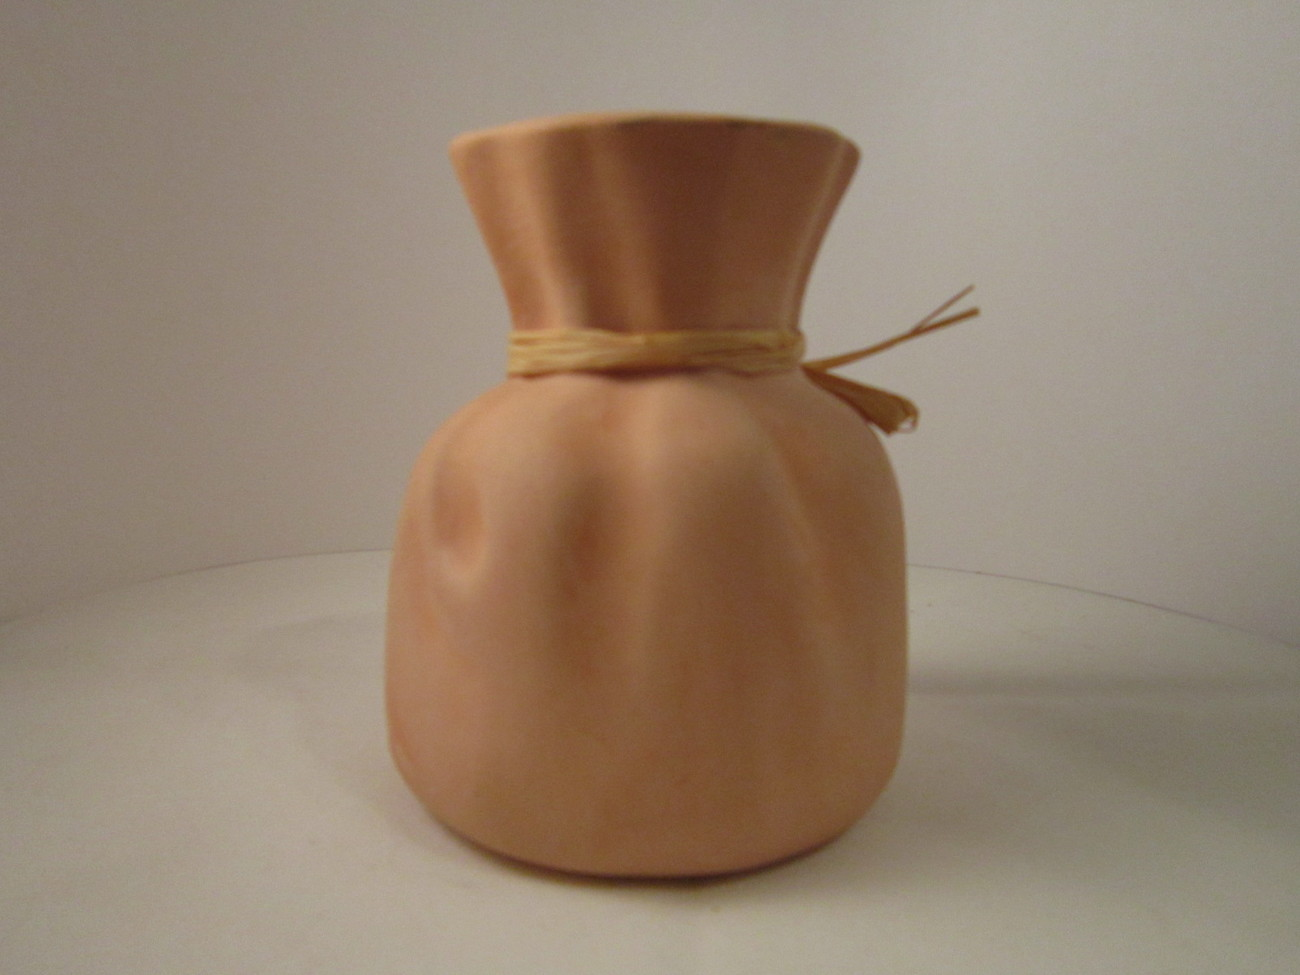 Vase_pink_clay_pottery_sack_02